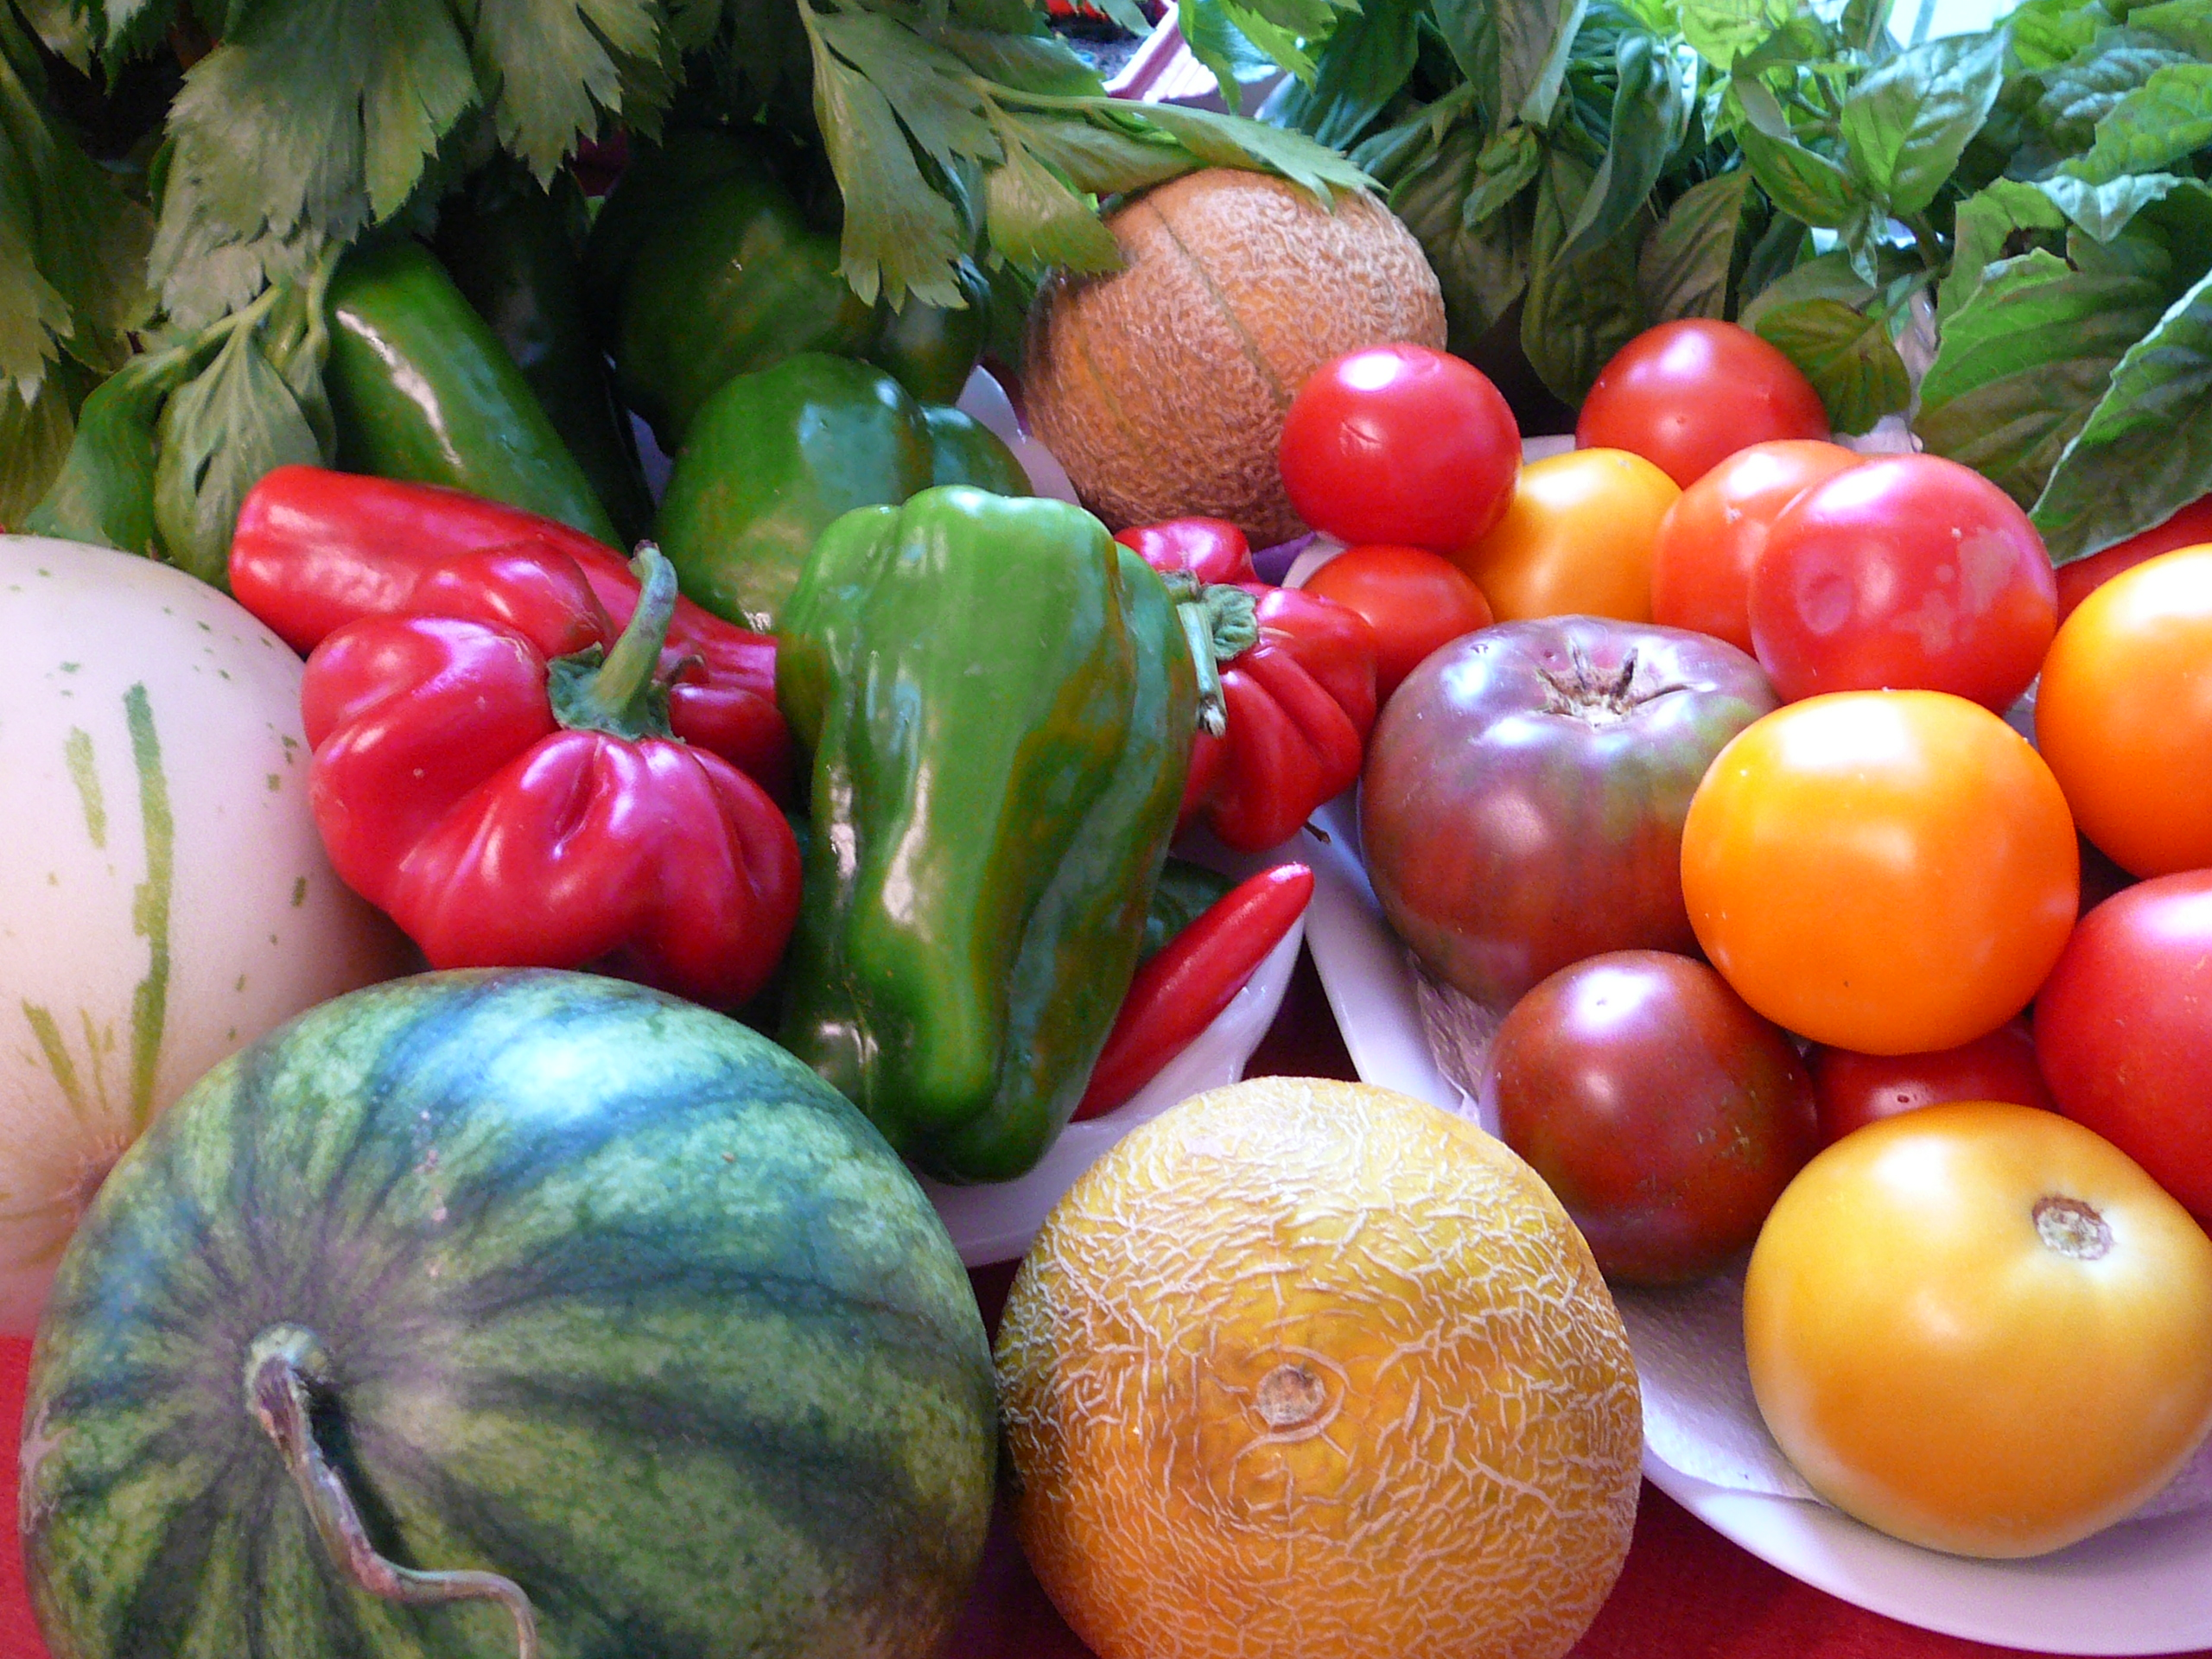 Photo of a variety of Michigan summer fruits and vegetables. Image credit: flickr.com user jpwbee